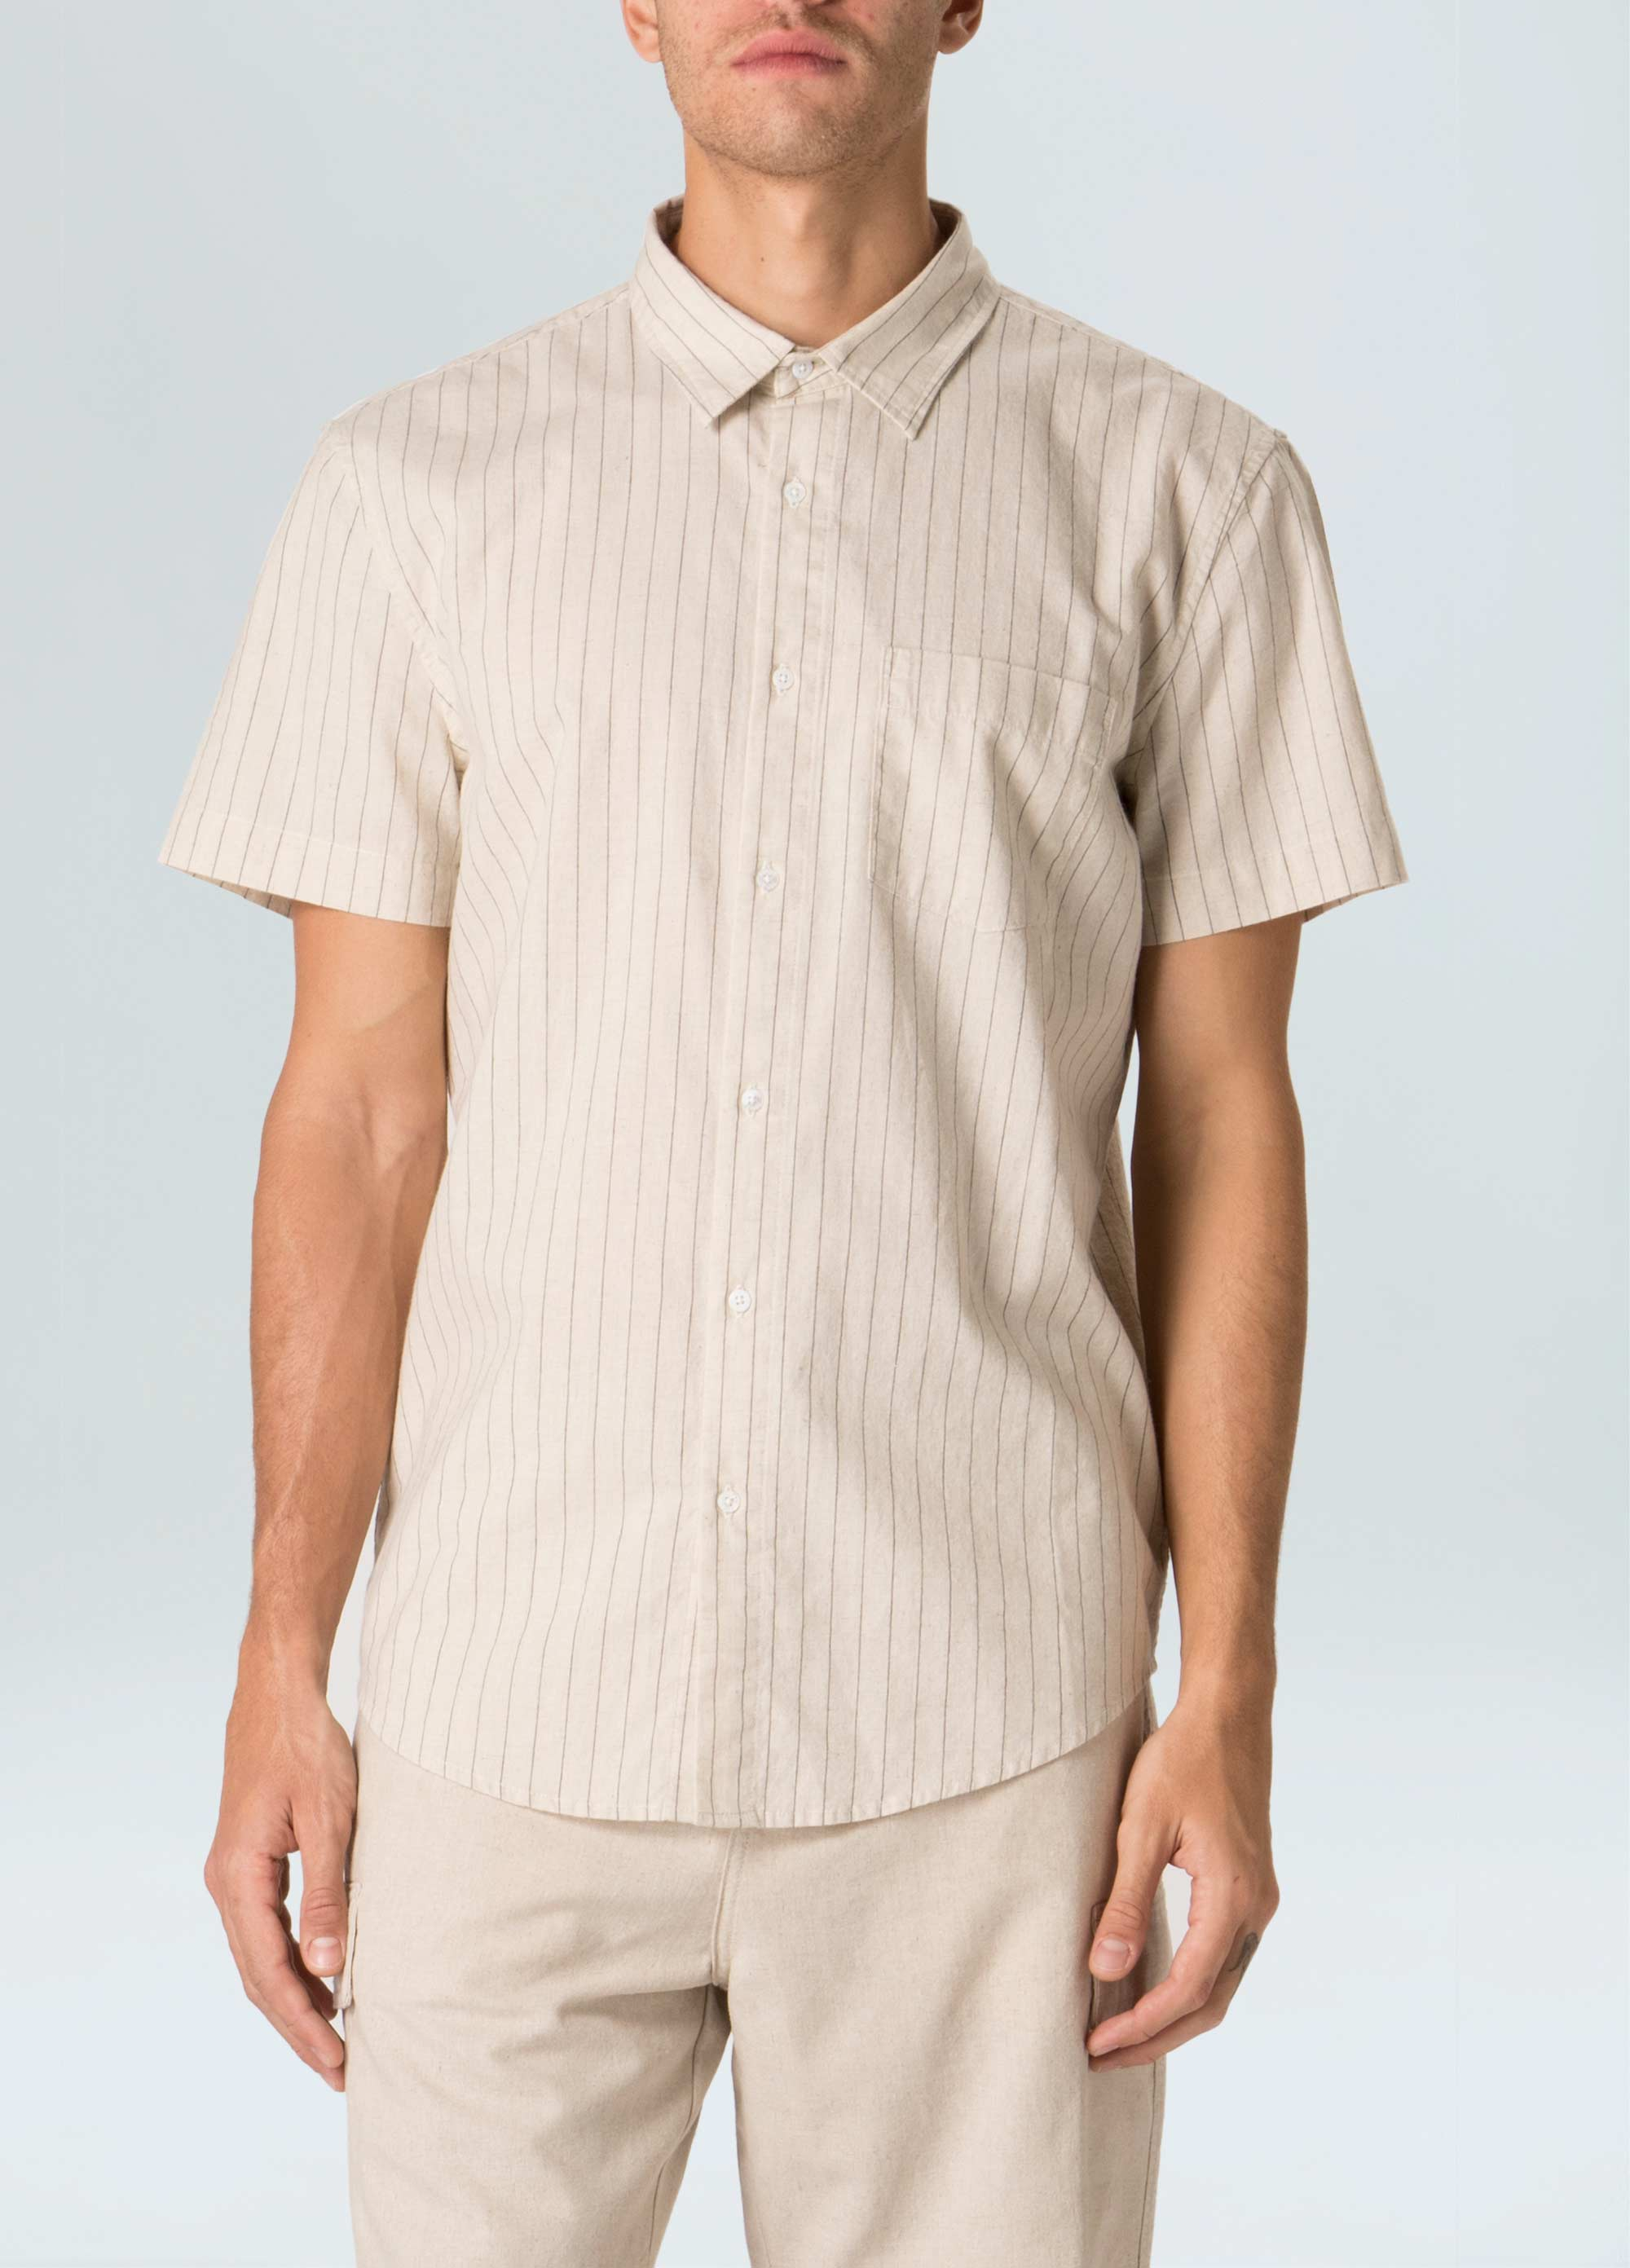 Thin Stripes Cotton Linen Shirt